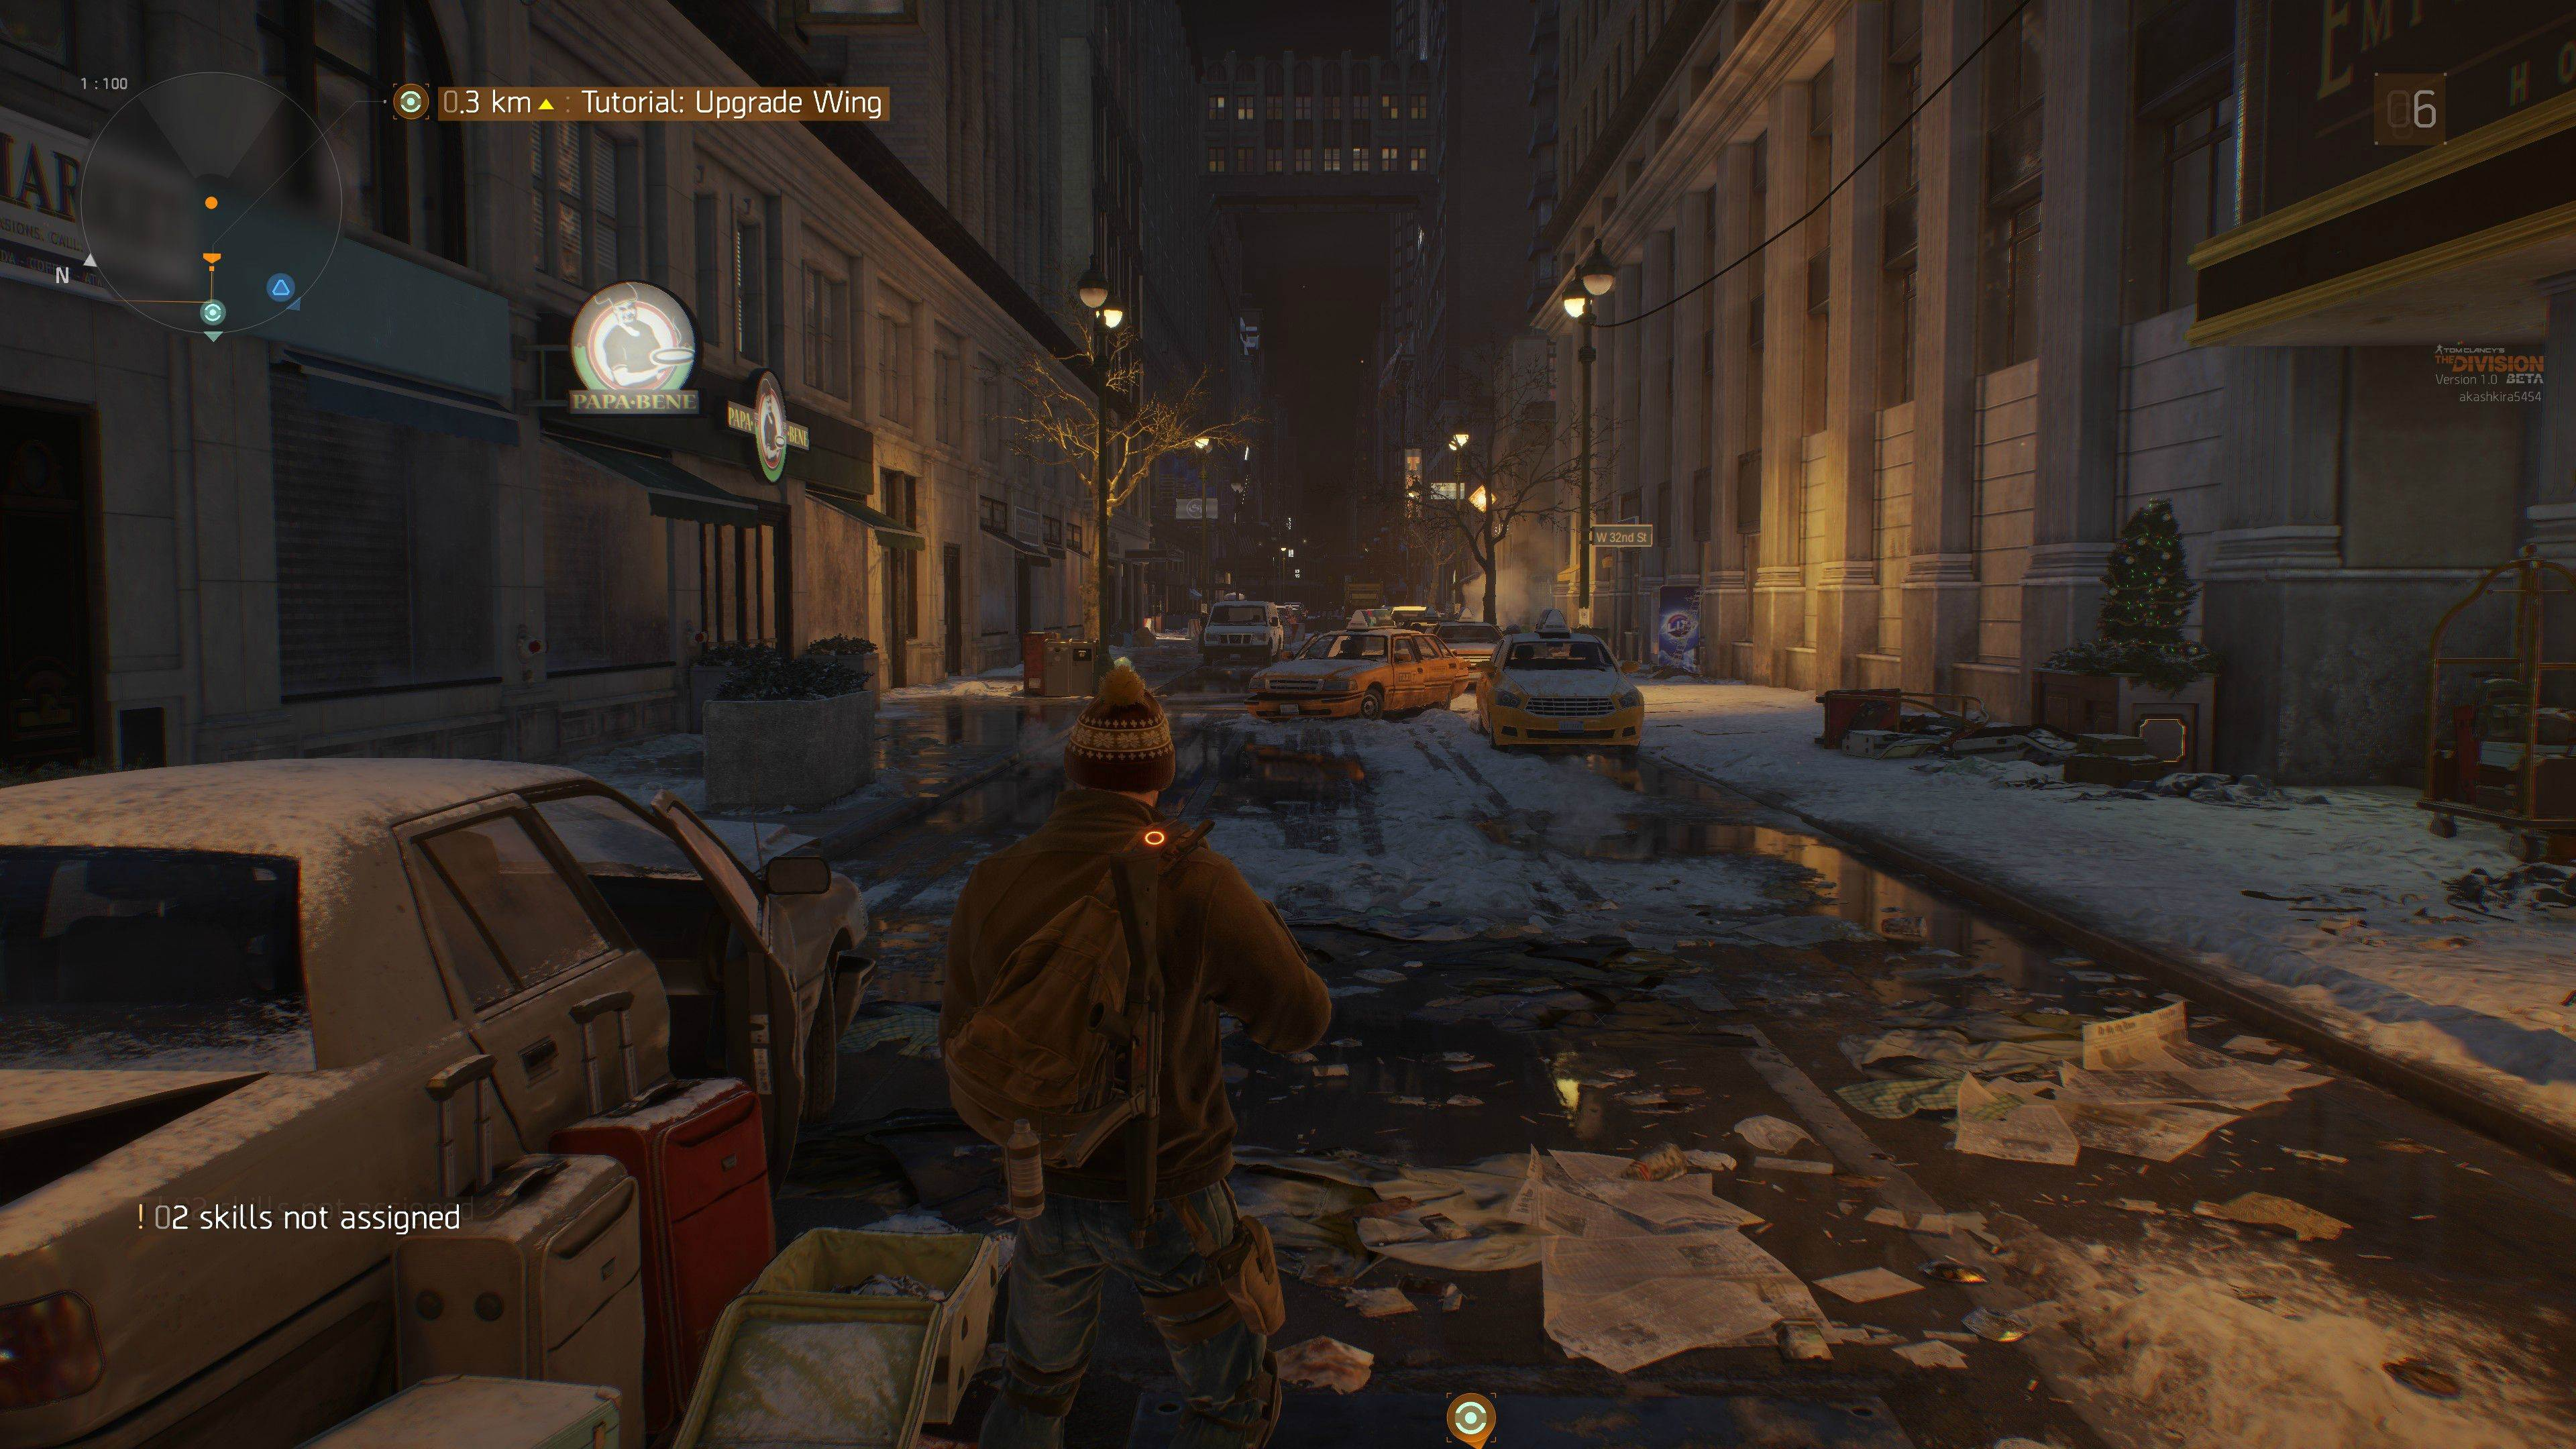 Nvidia Windows 10 Problems - The division 4k pc maxed out